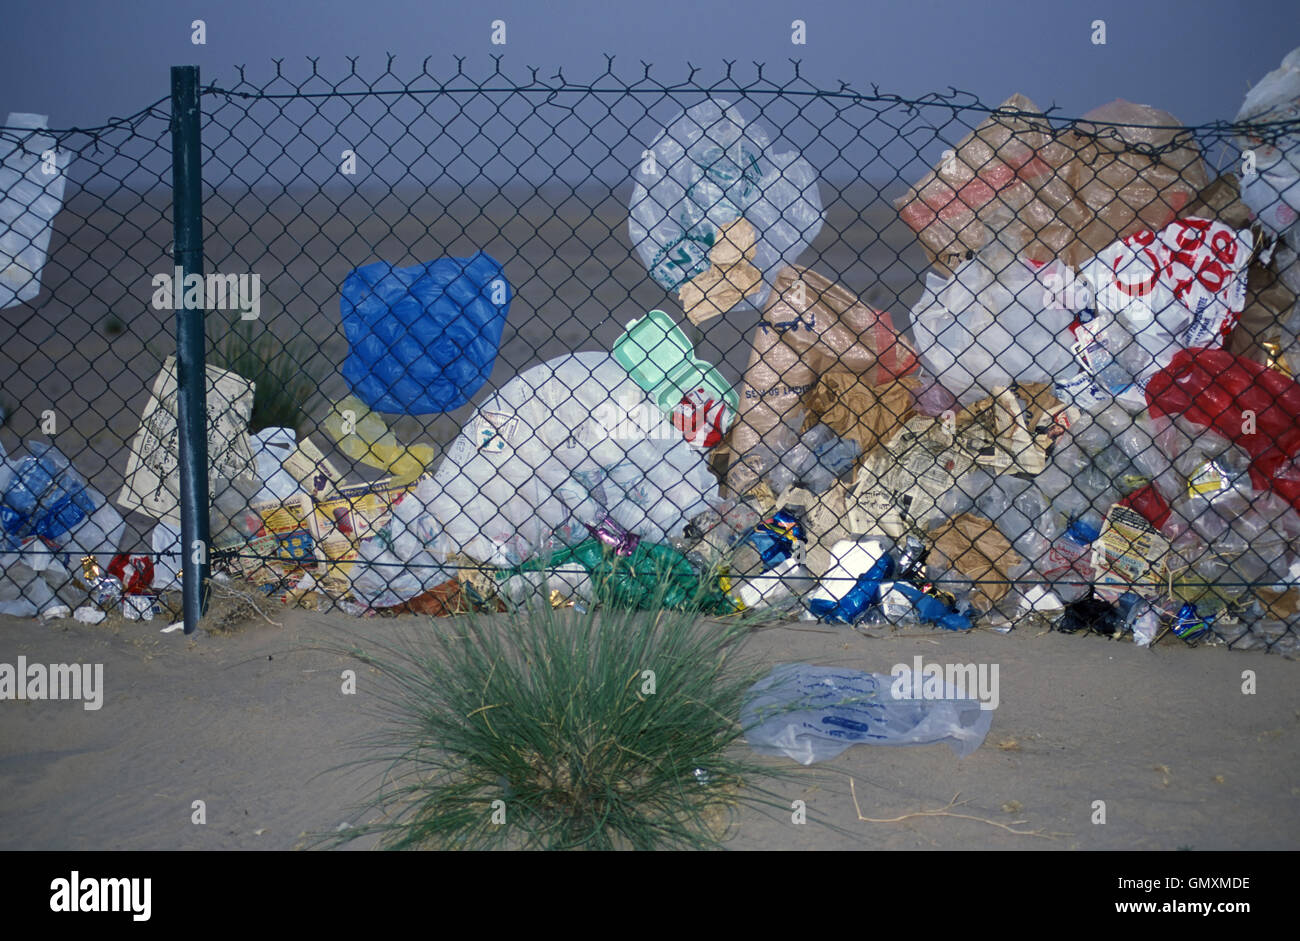 Plastic bags and other garbage pushed by the wind against a fence in Kuwait desert. Kuwait - Stock Image